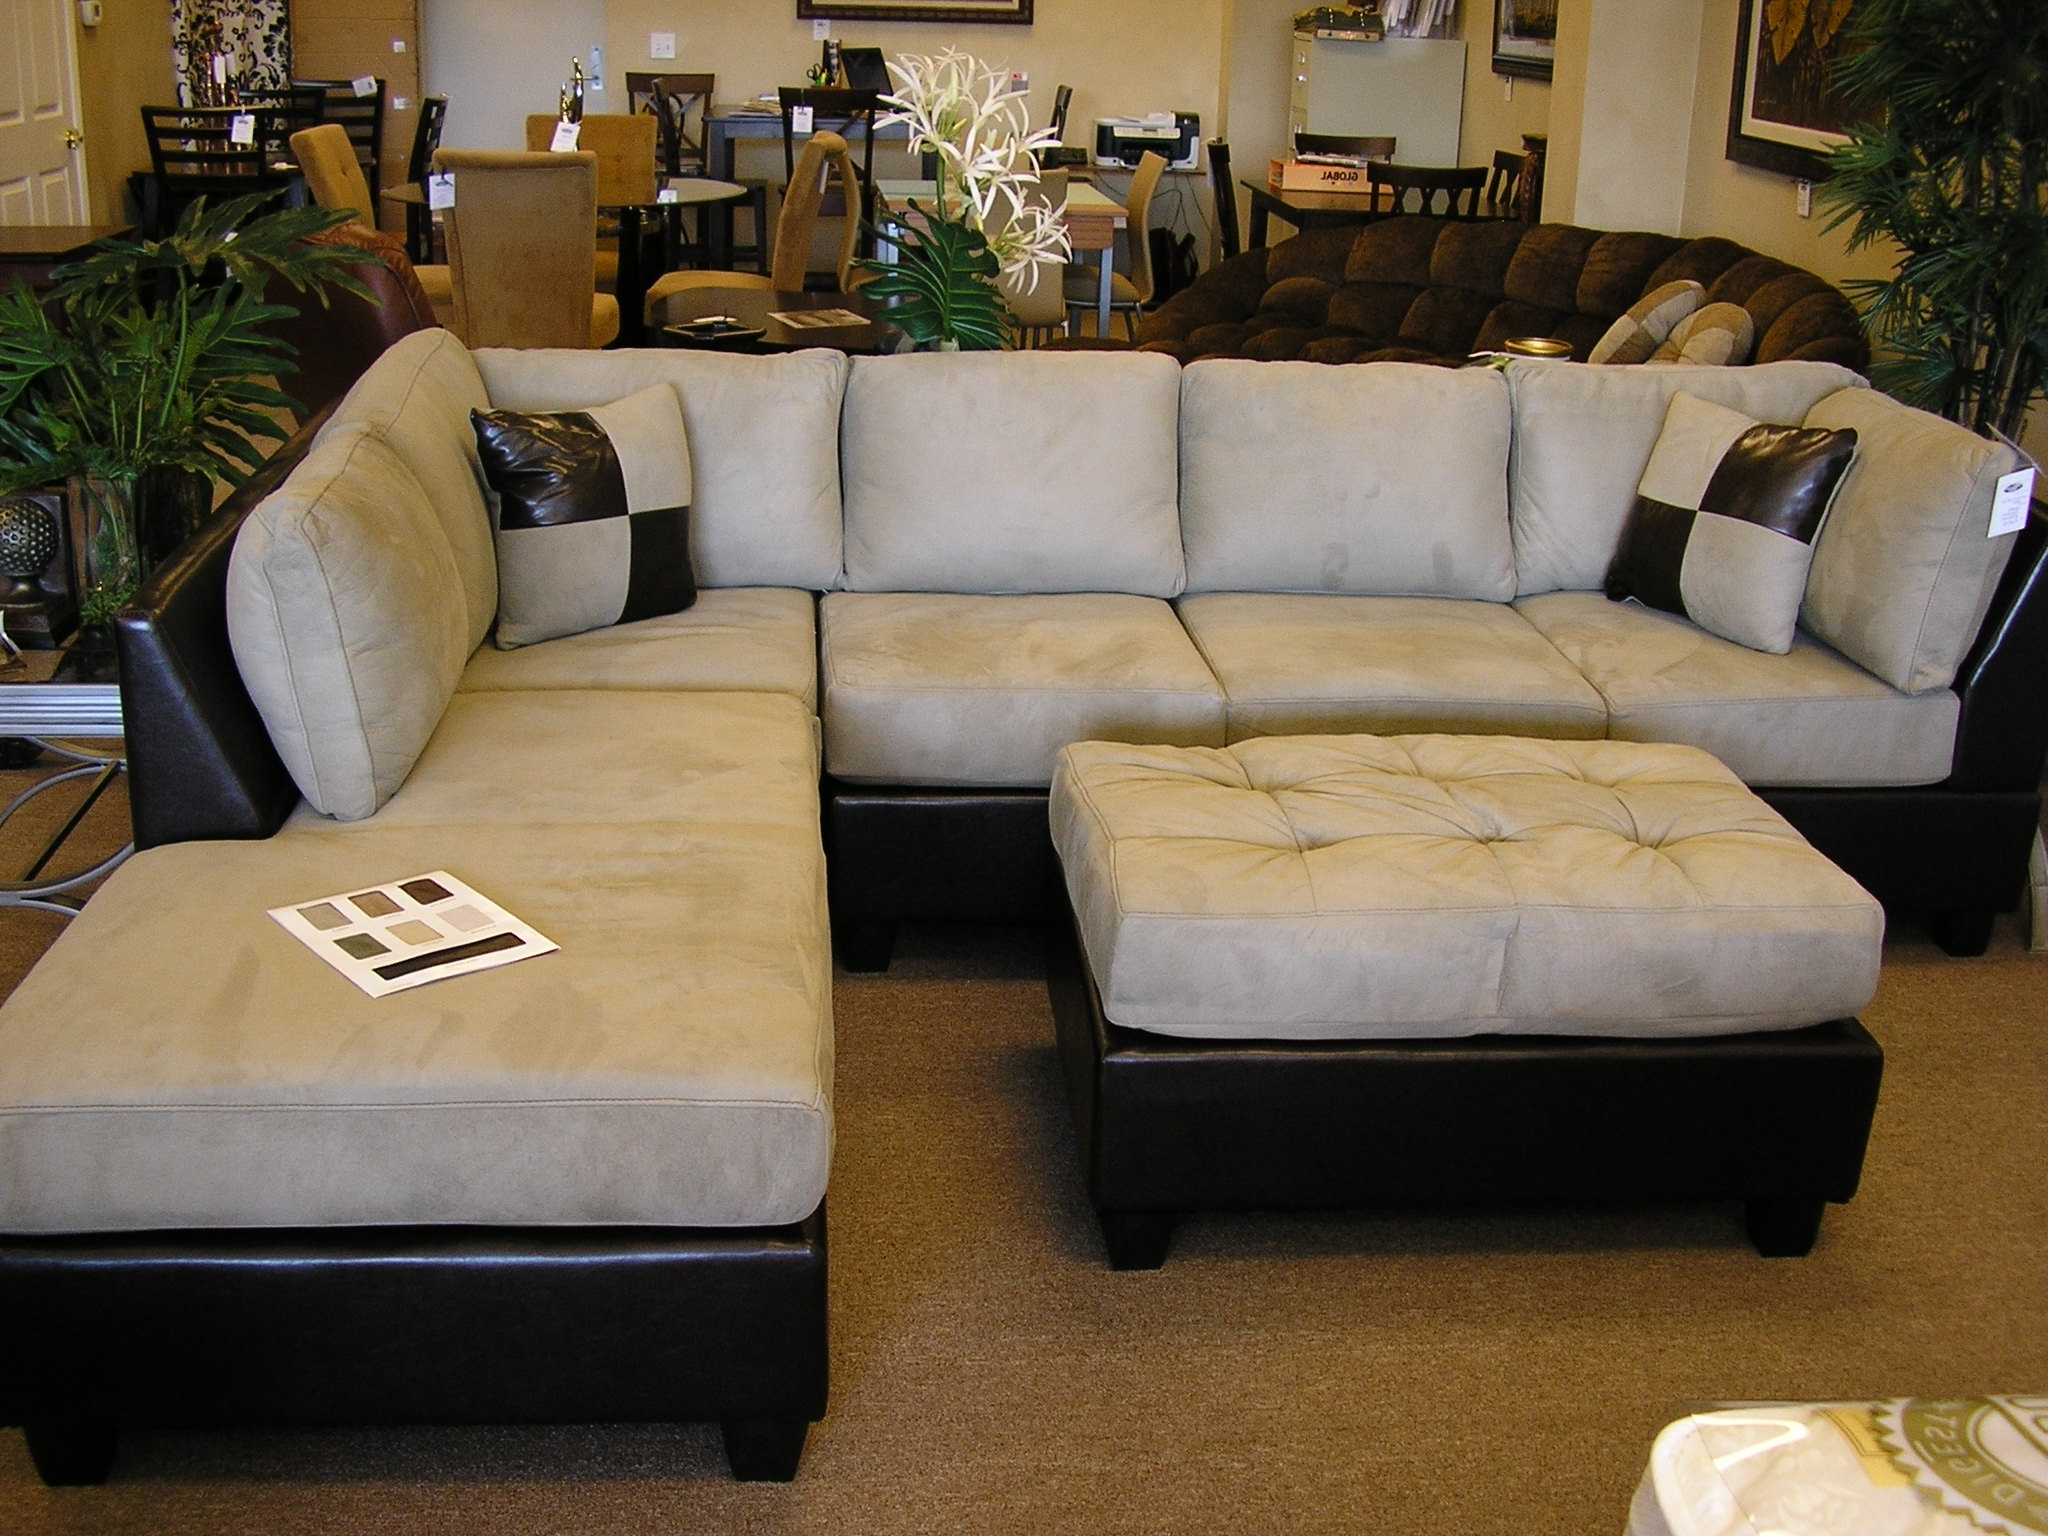 Latest Sectional Sofa Design: Beautiful Sectional Sofas With Chaise Pertaining To Reversible Chaise Sectionals (View 3 of 15)